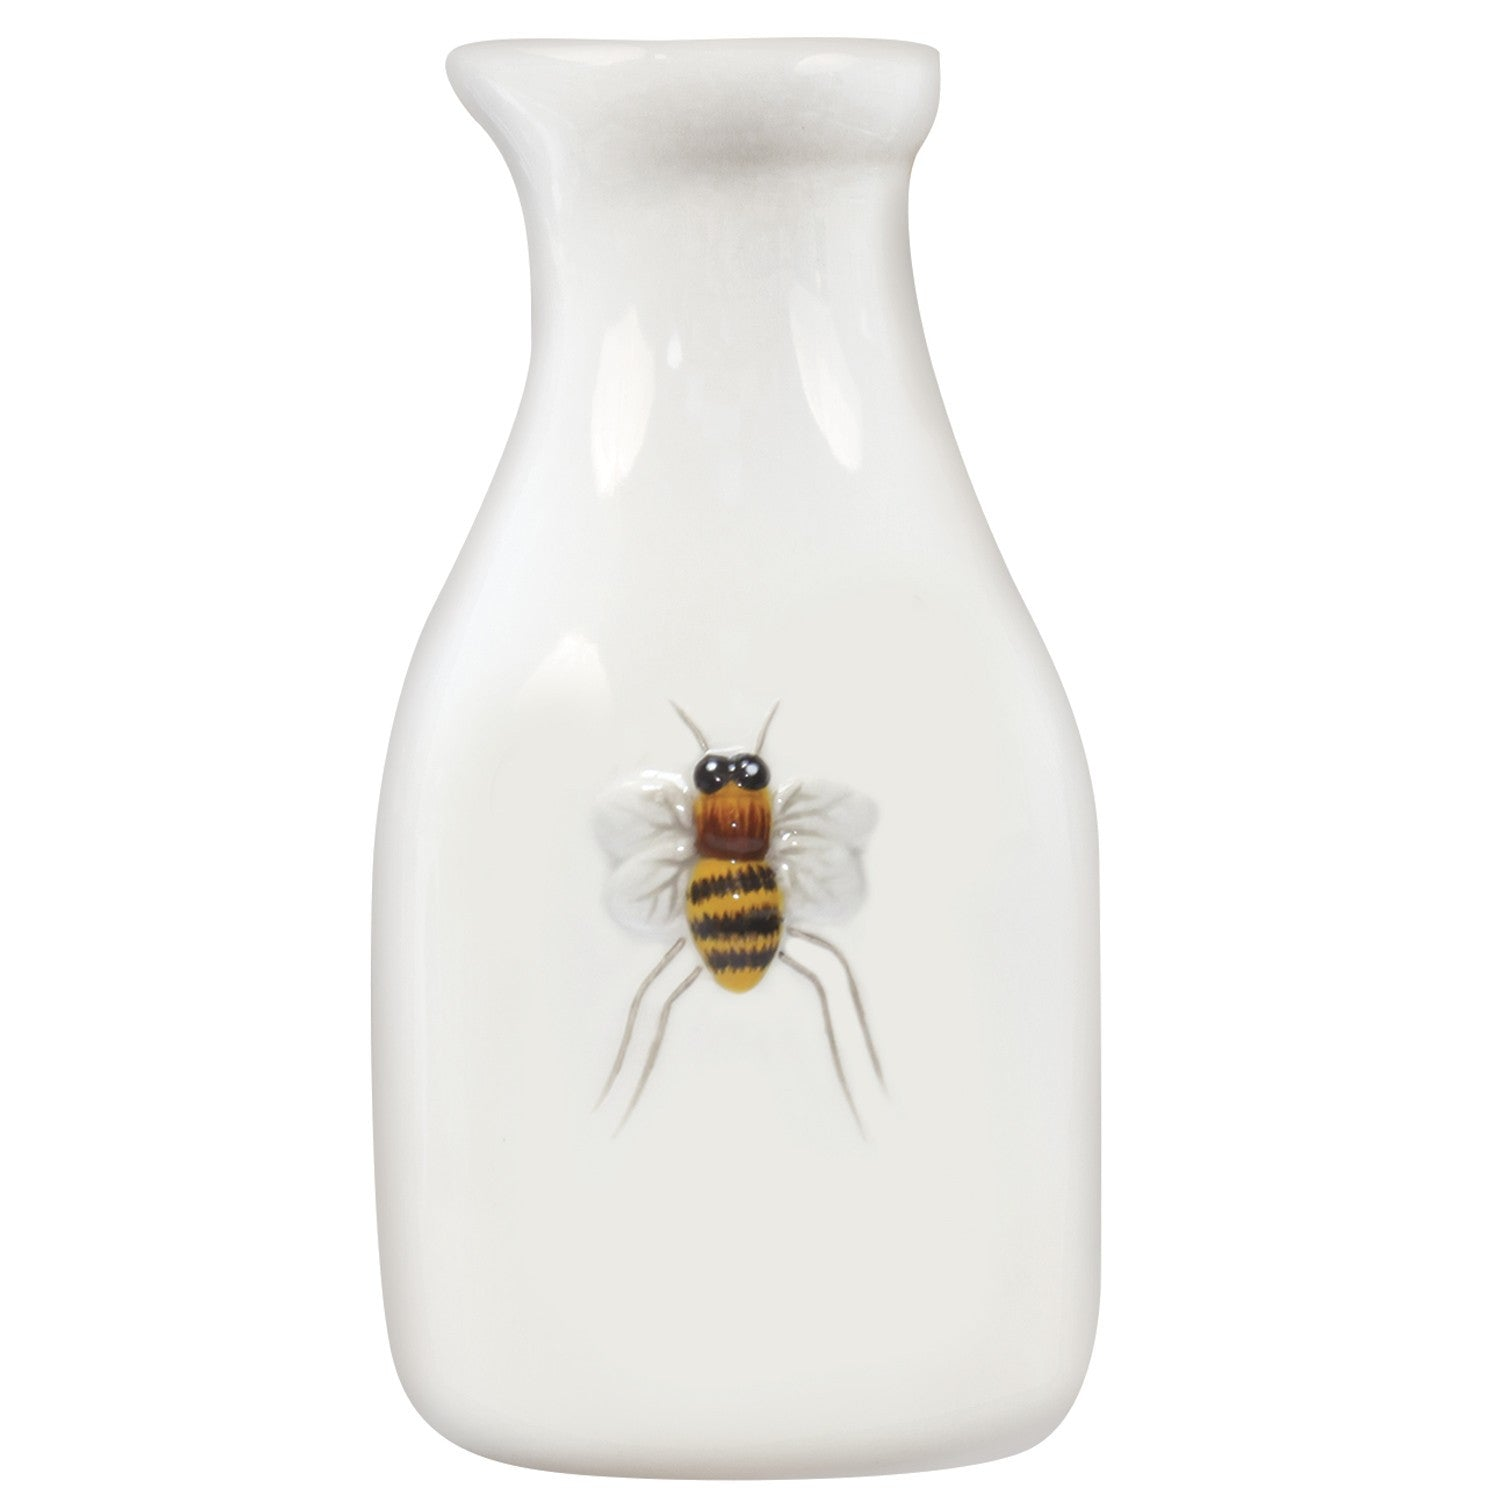 Bee Ceramic Creamer Bottle by Mary Lake-Thompson - Pi Style Boutique - Mary Lake-Thompson Ltd. - Gift & Decor